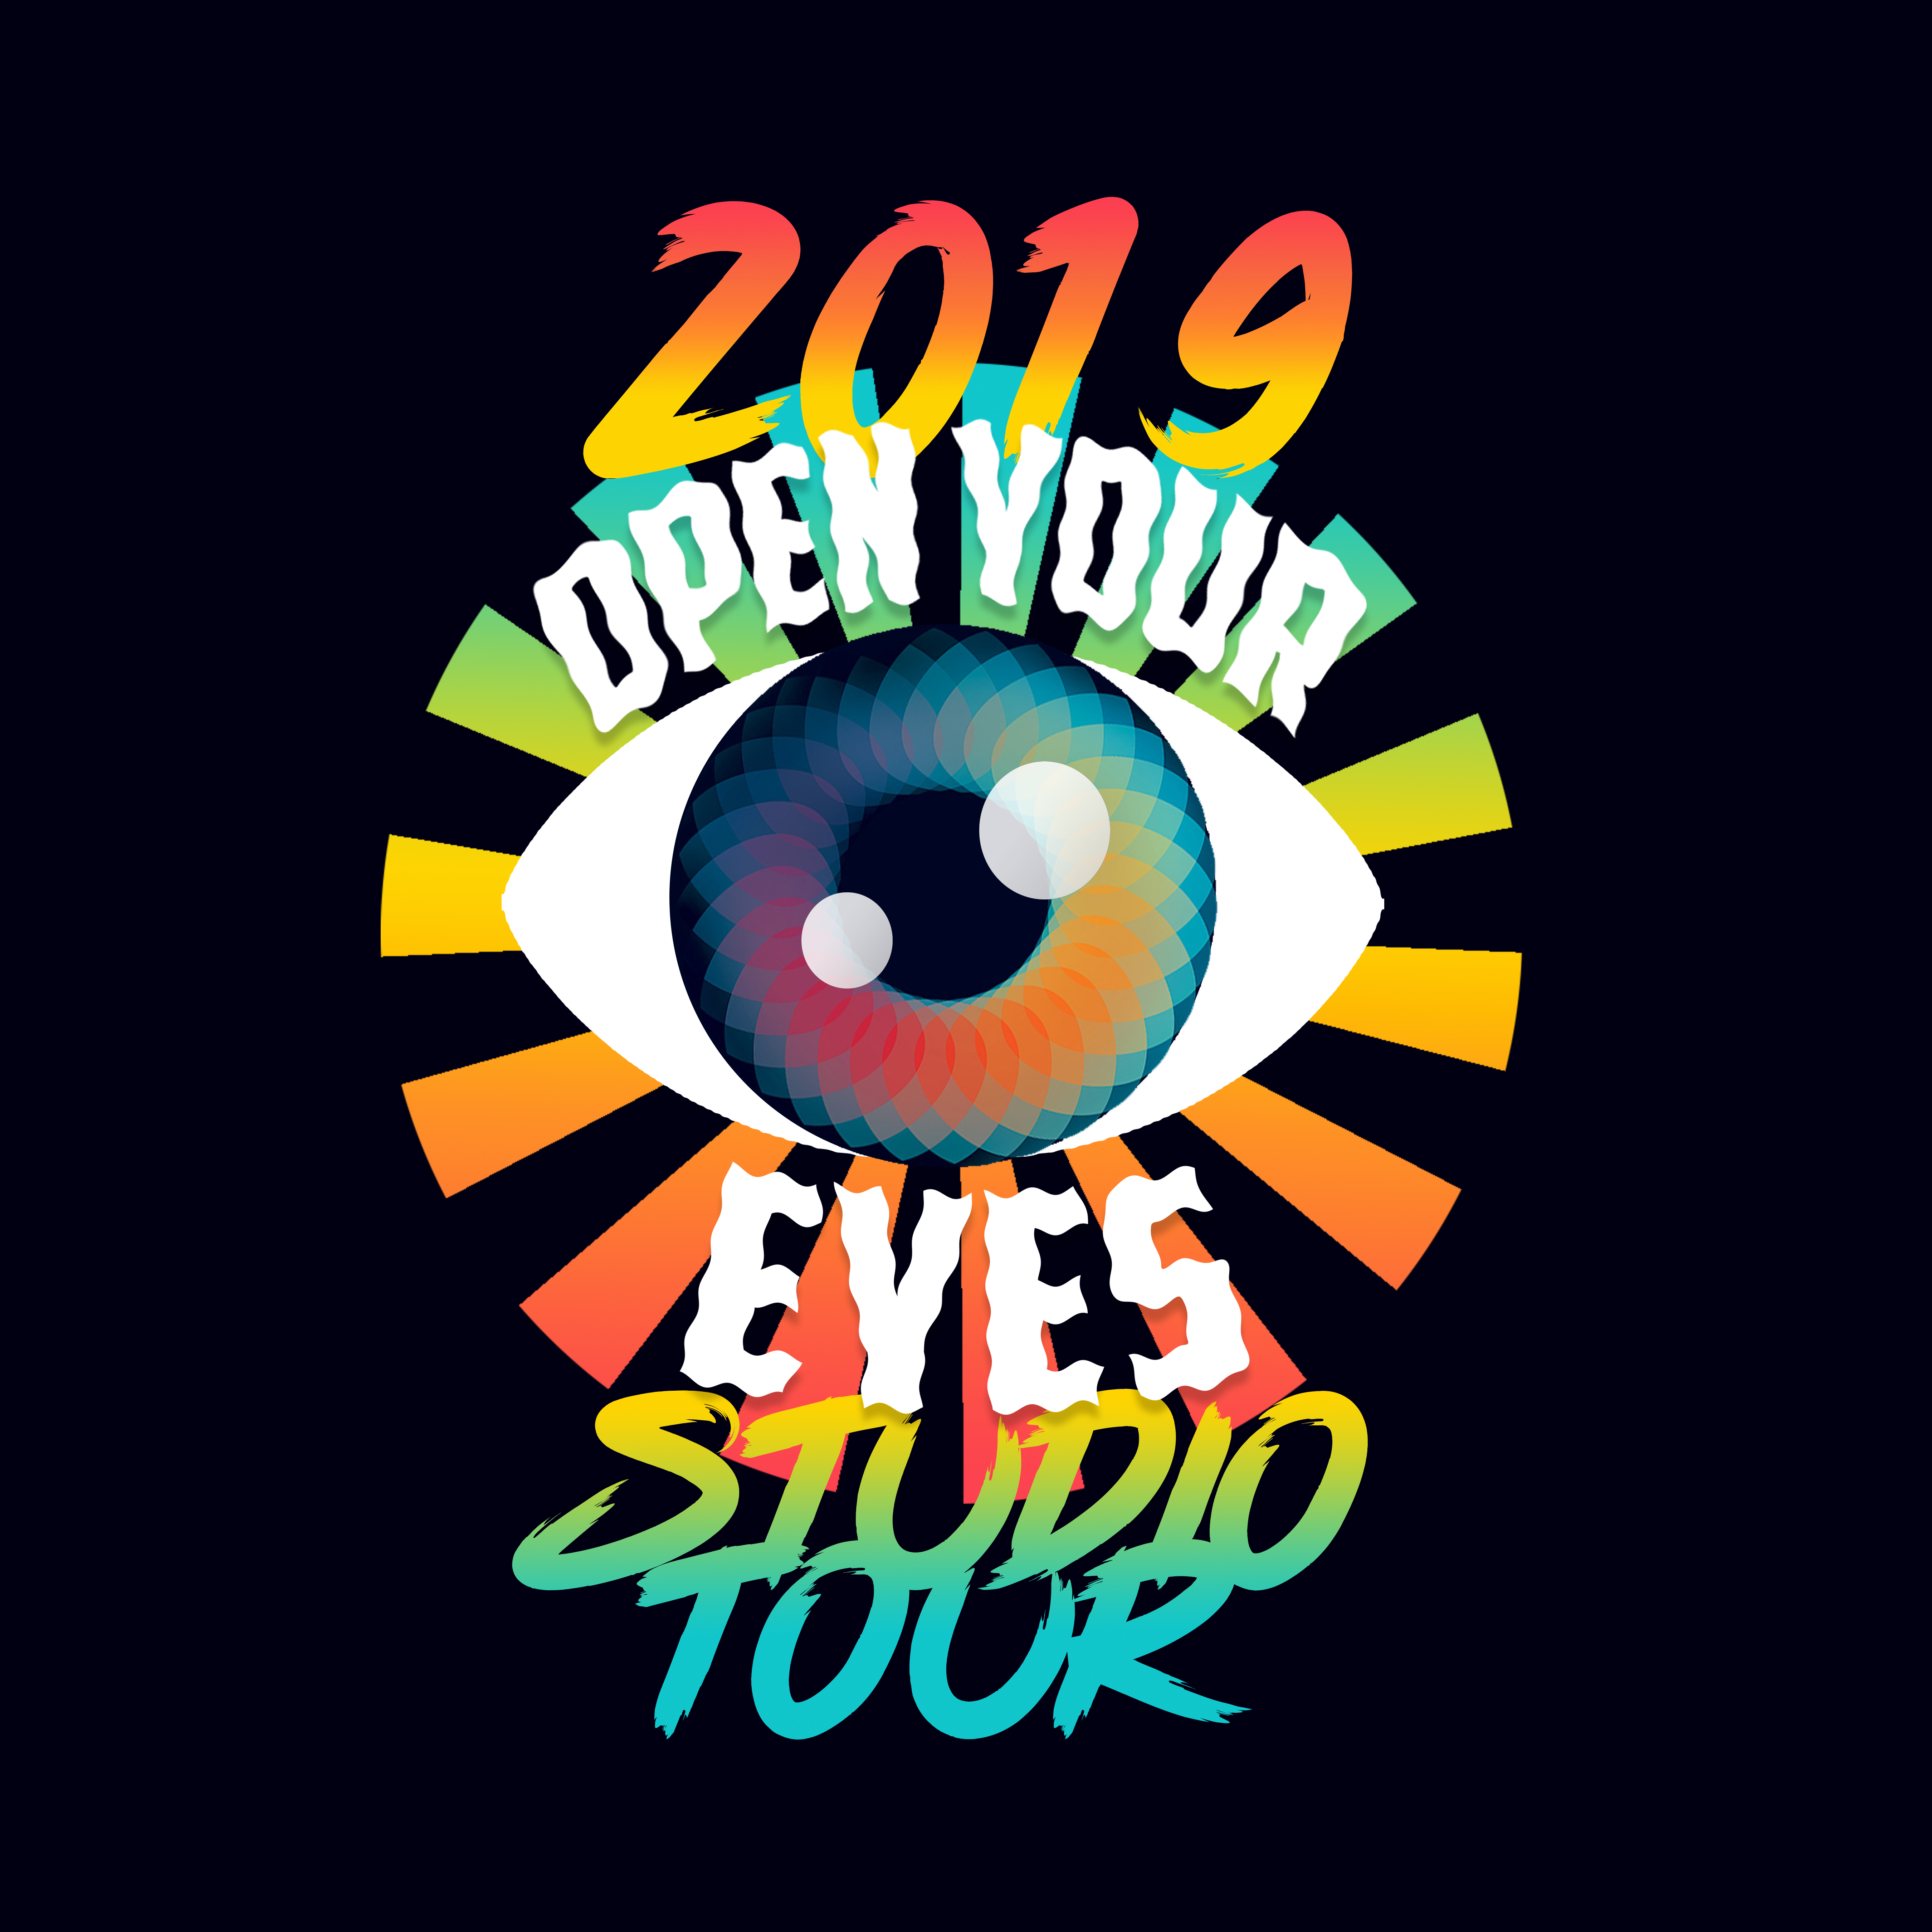 Open Your Eyes Tour 2019